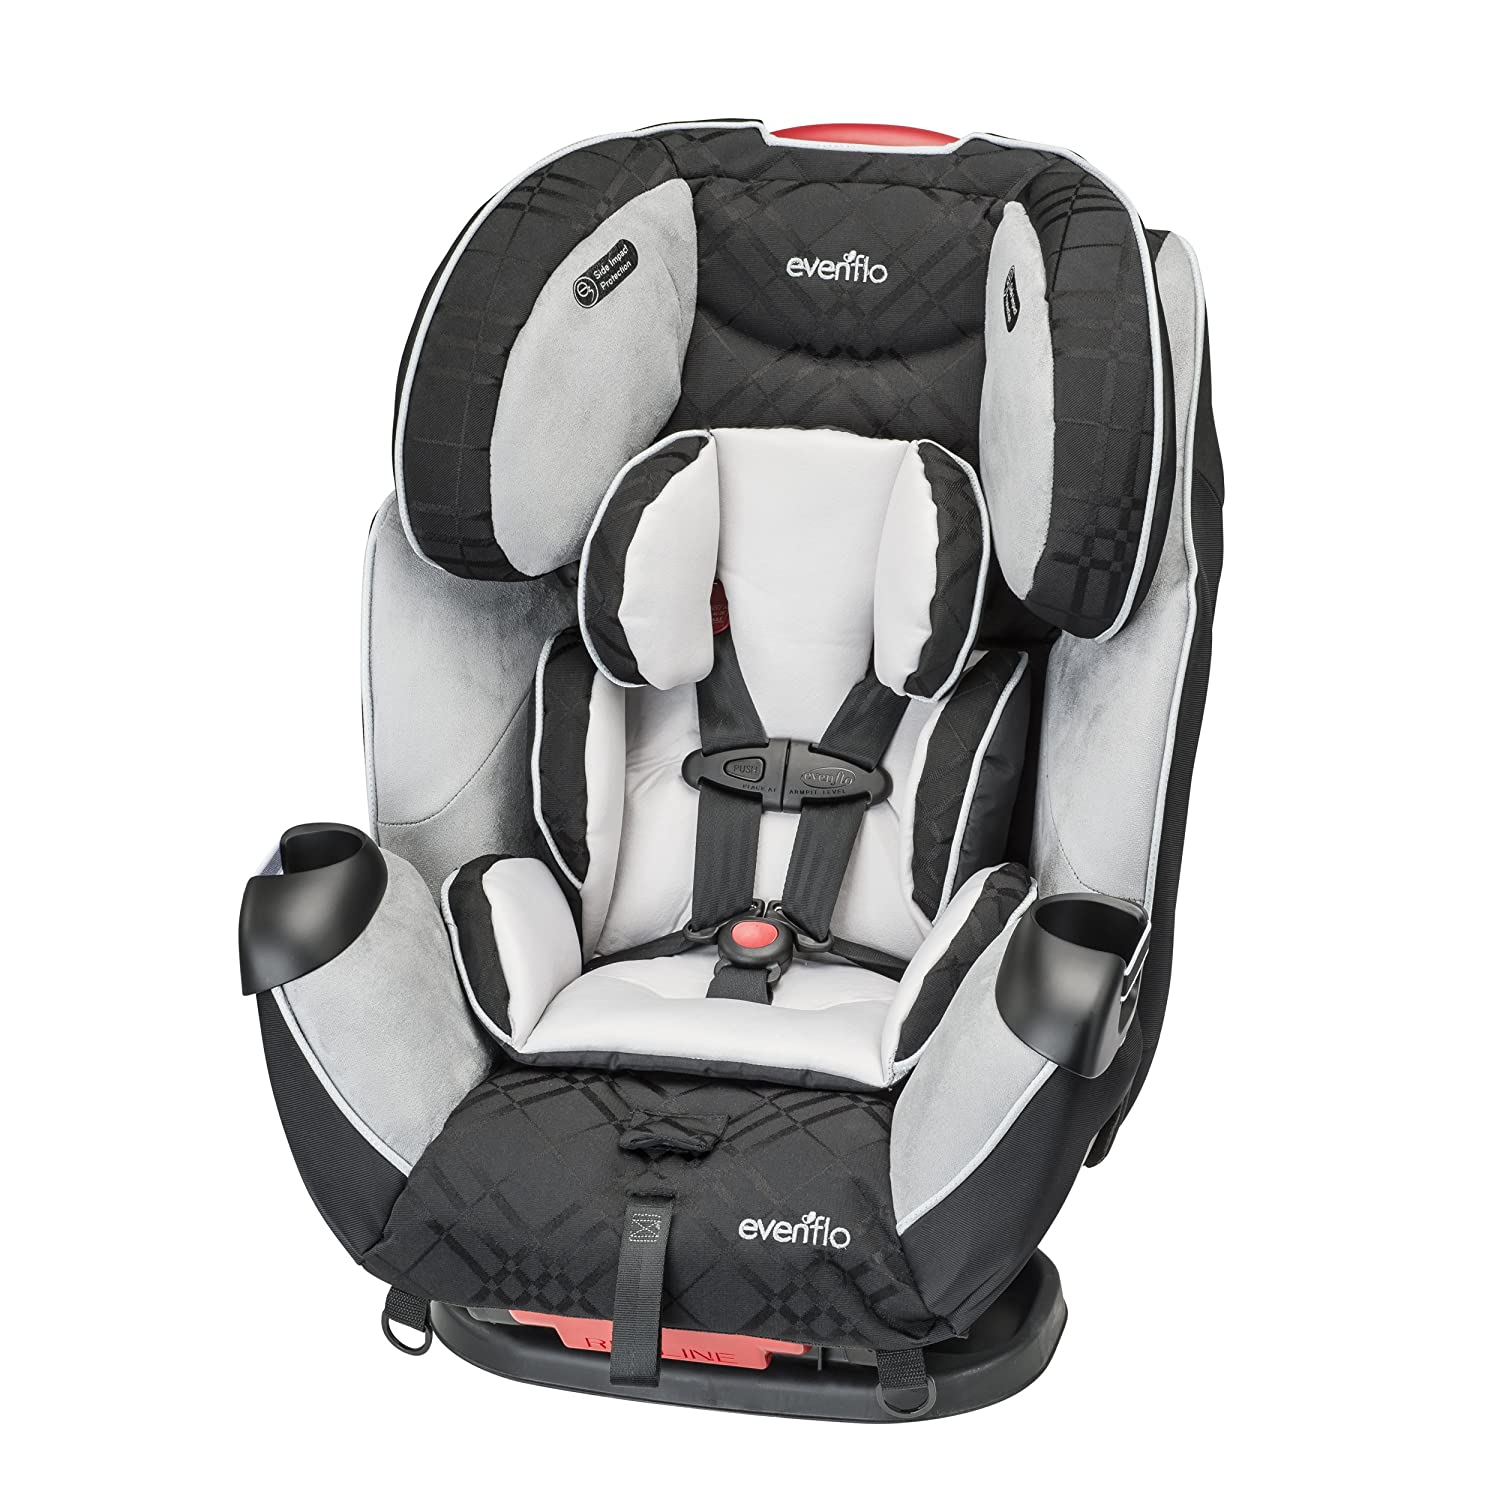 Amazon Com Evenflo Platinum Symphony Elite All In One Car Seat Convertible Child Safety Car Seats Baby